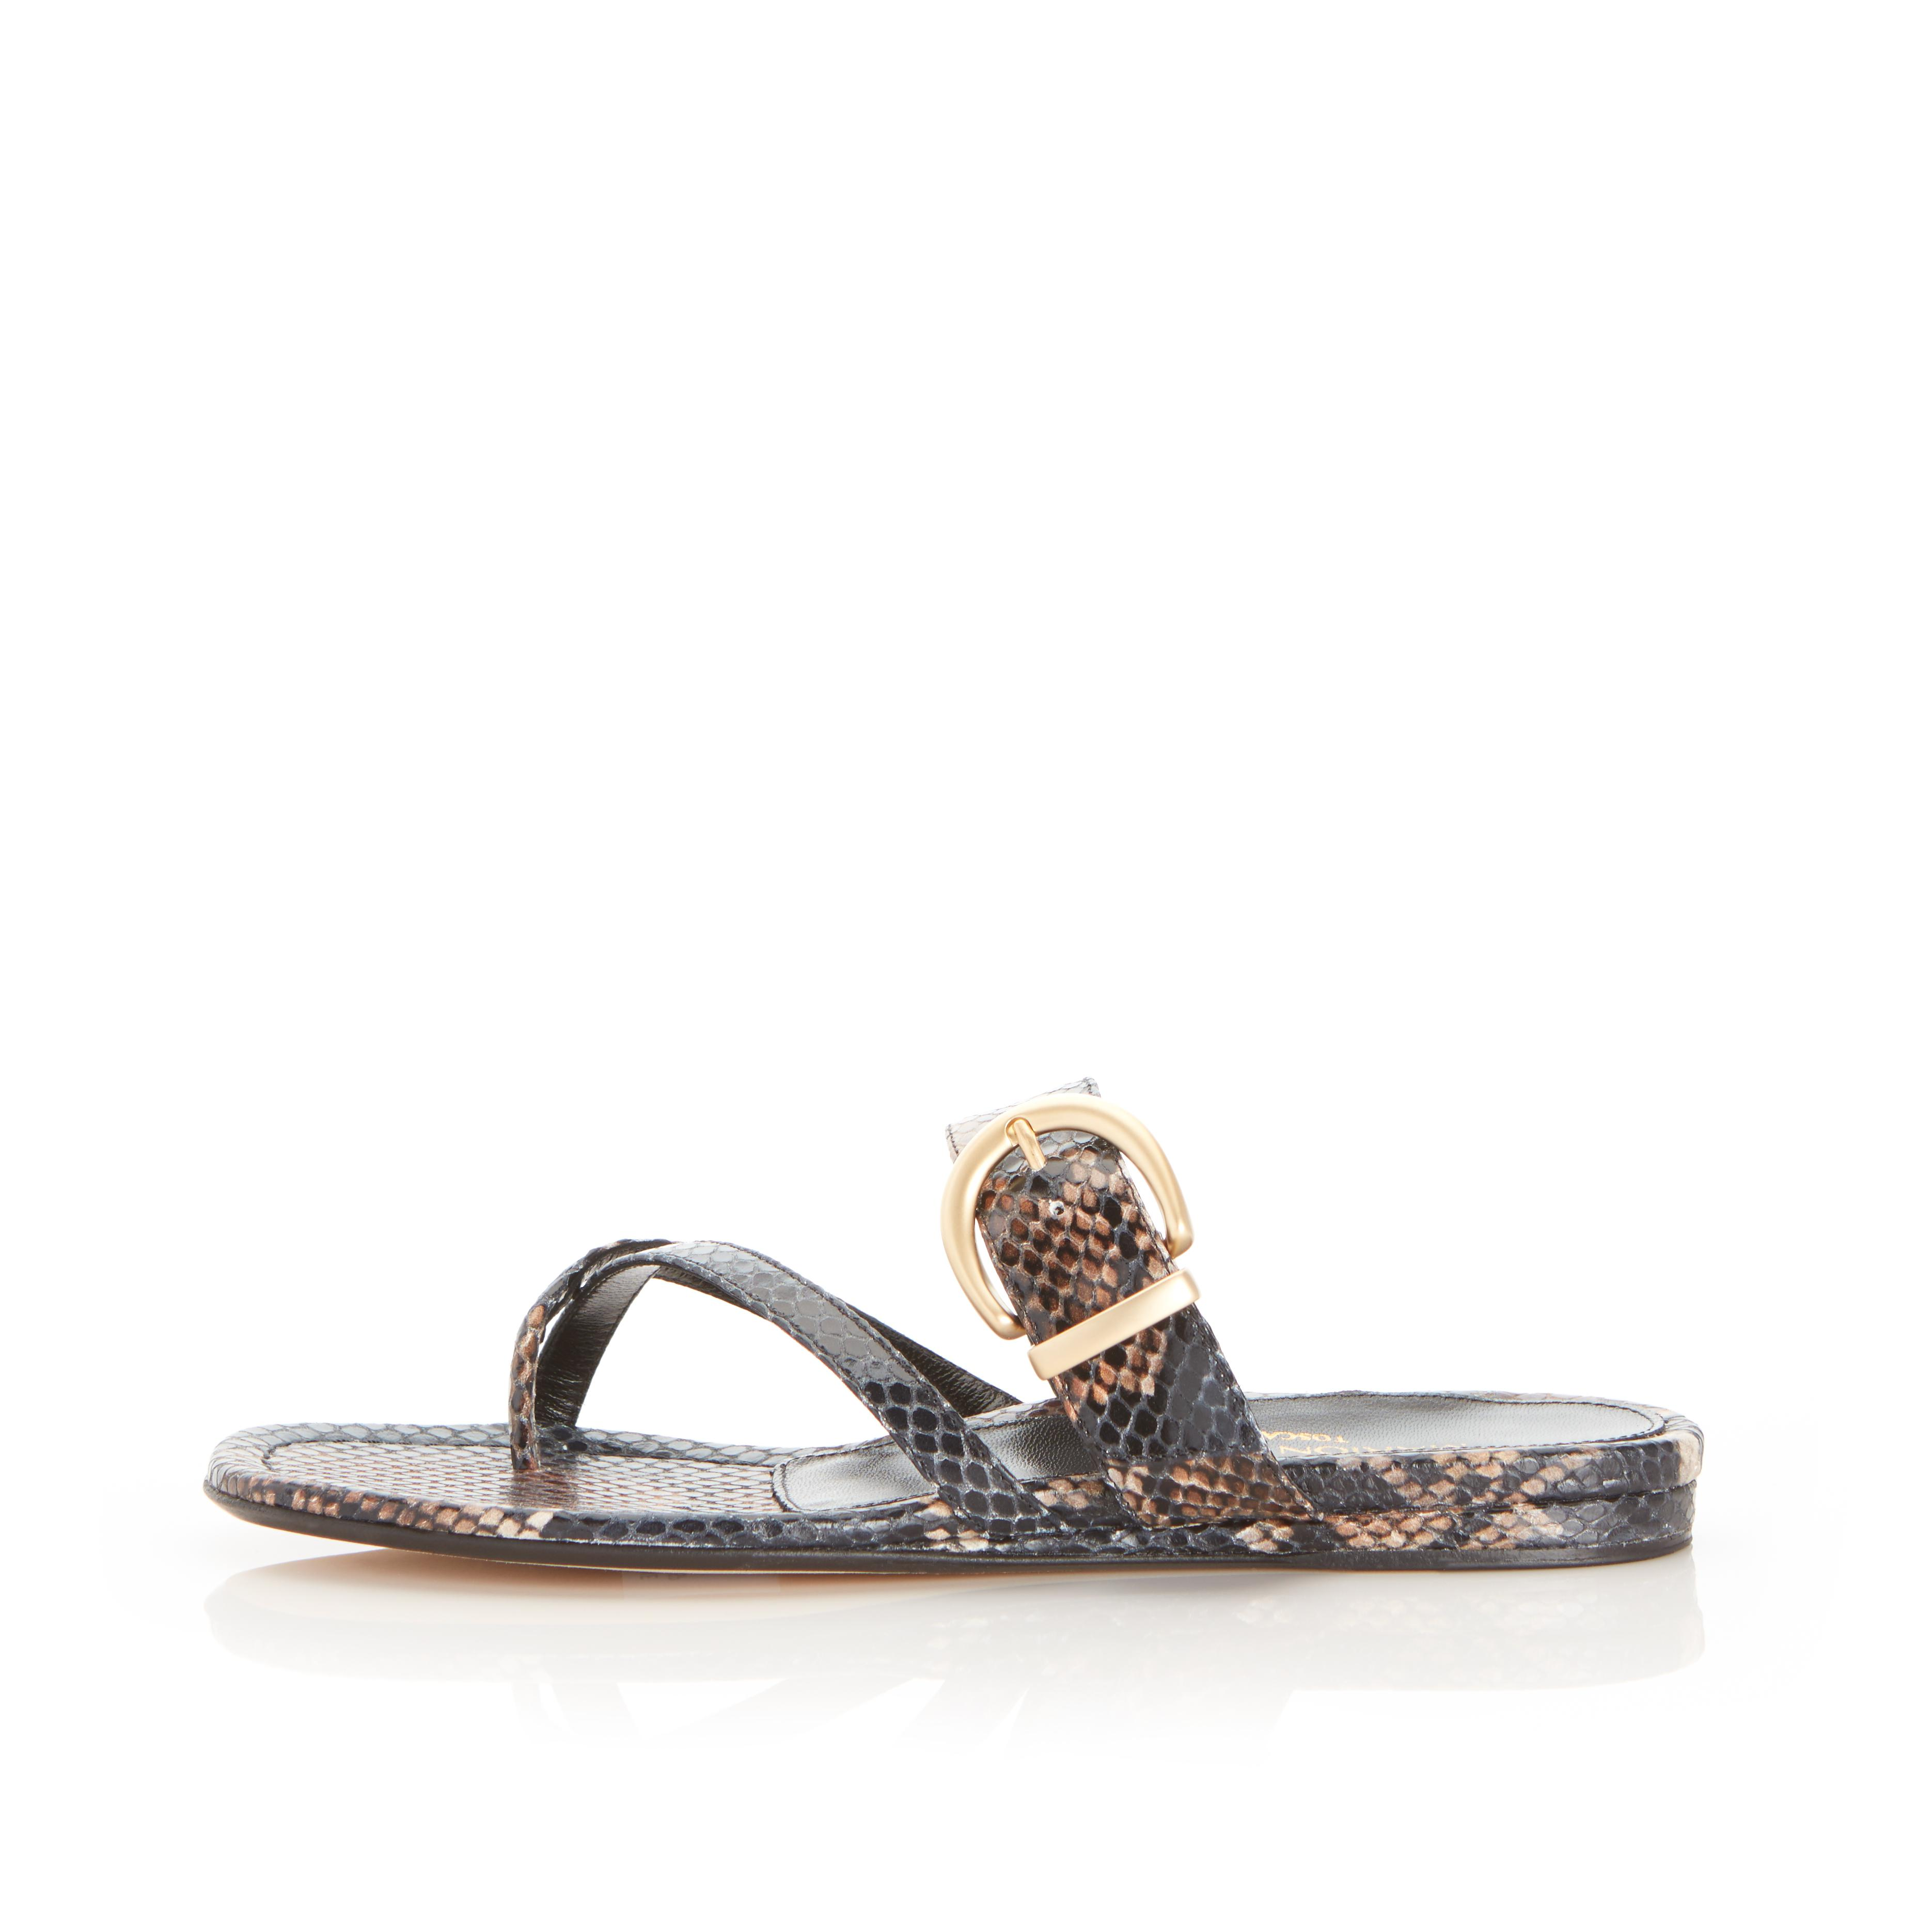 Hayley | Leather Thong Sandal With Metal Buckle Detail 0